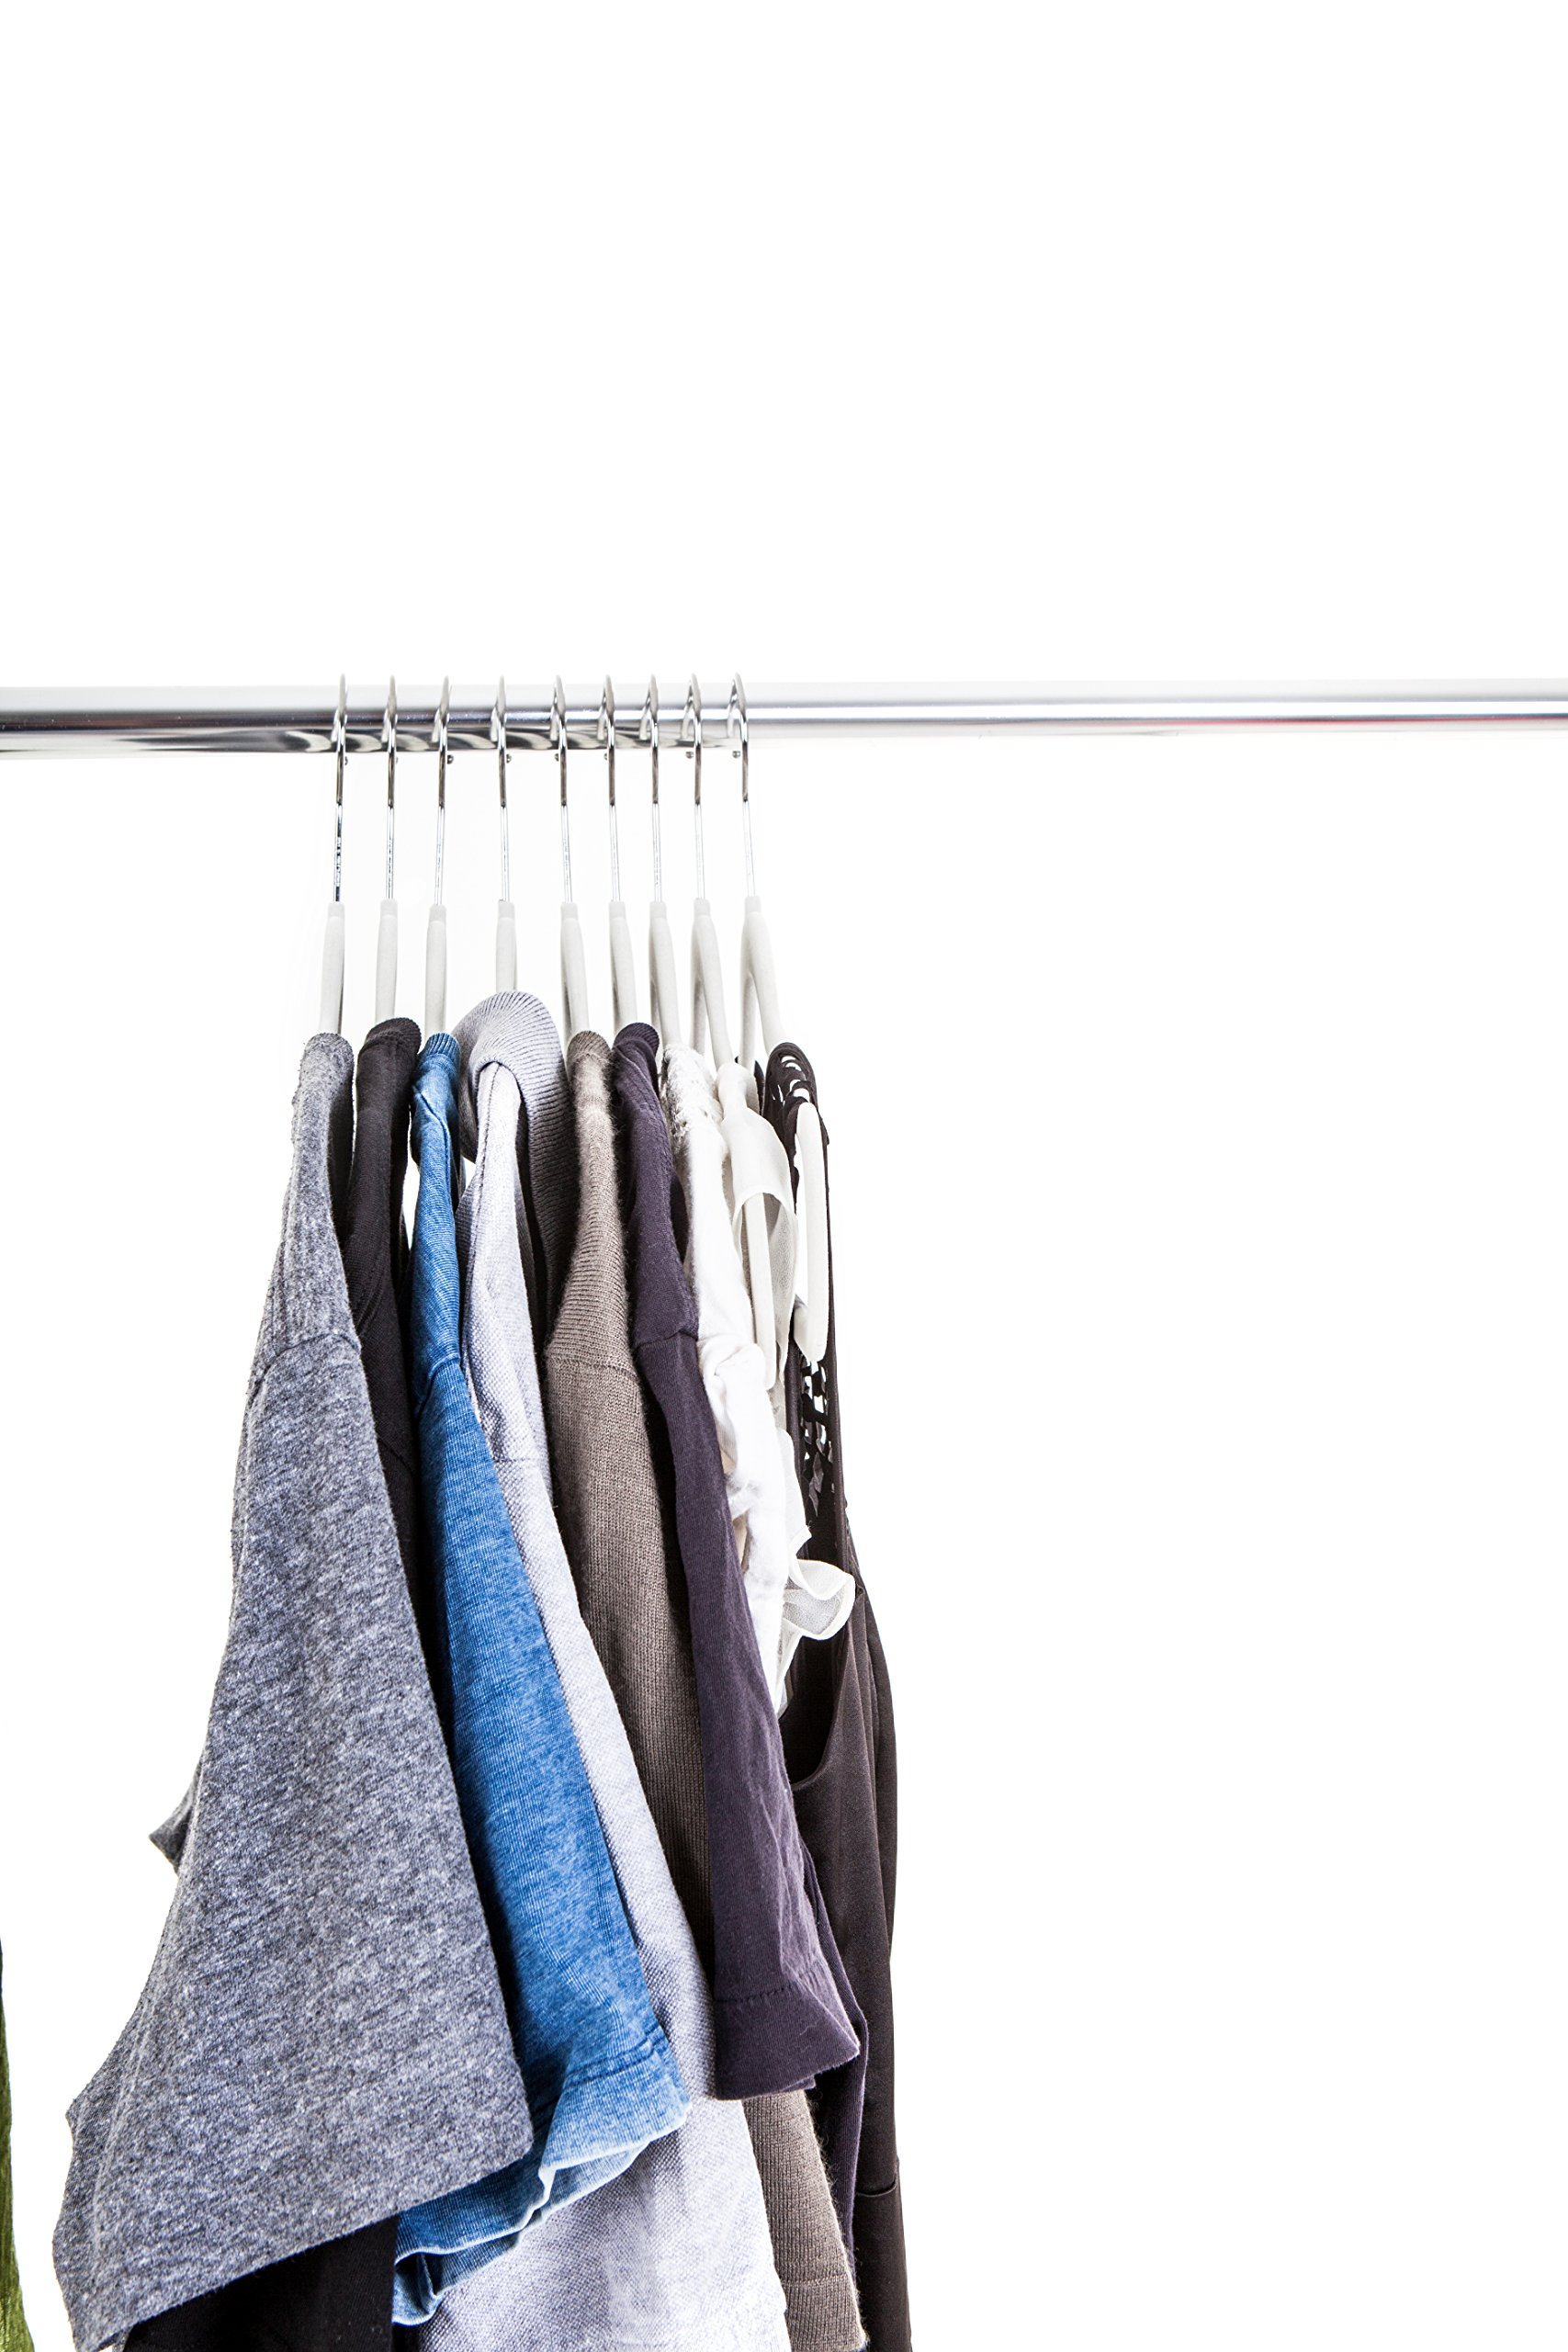 50 pc Premium Quality Off-White Velvet Hangers - Space Saving Thin Profile, Non-slip Padded with Notched Shoulders for Dresses and Blouses â€'' Strong Enough for Coats and Pants by Popular Design Products